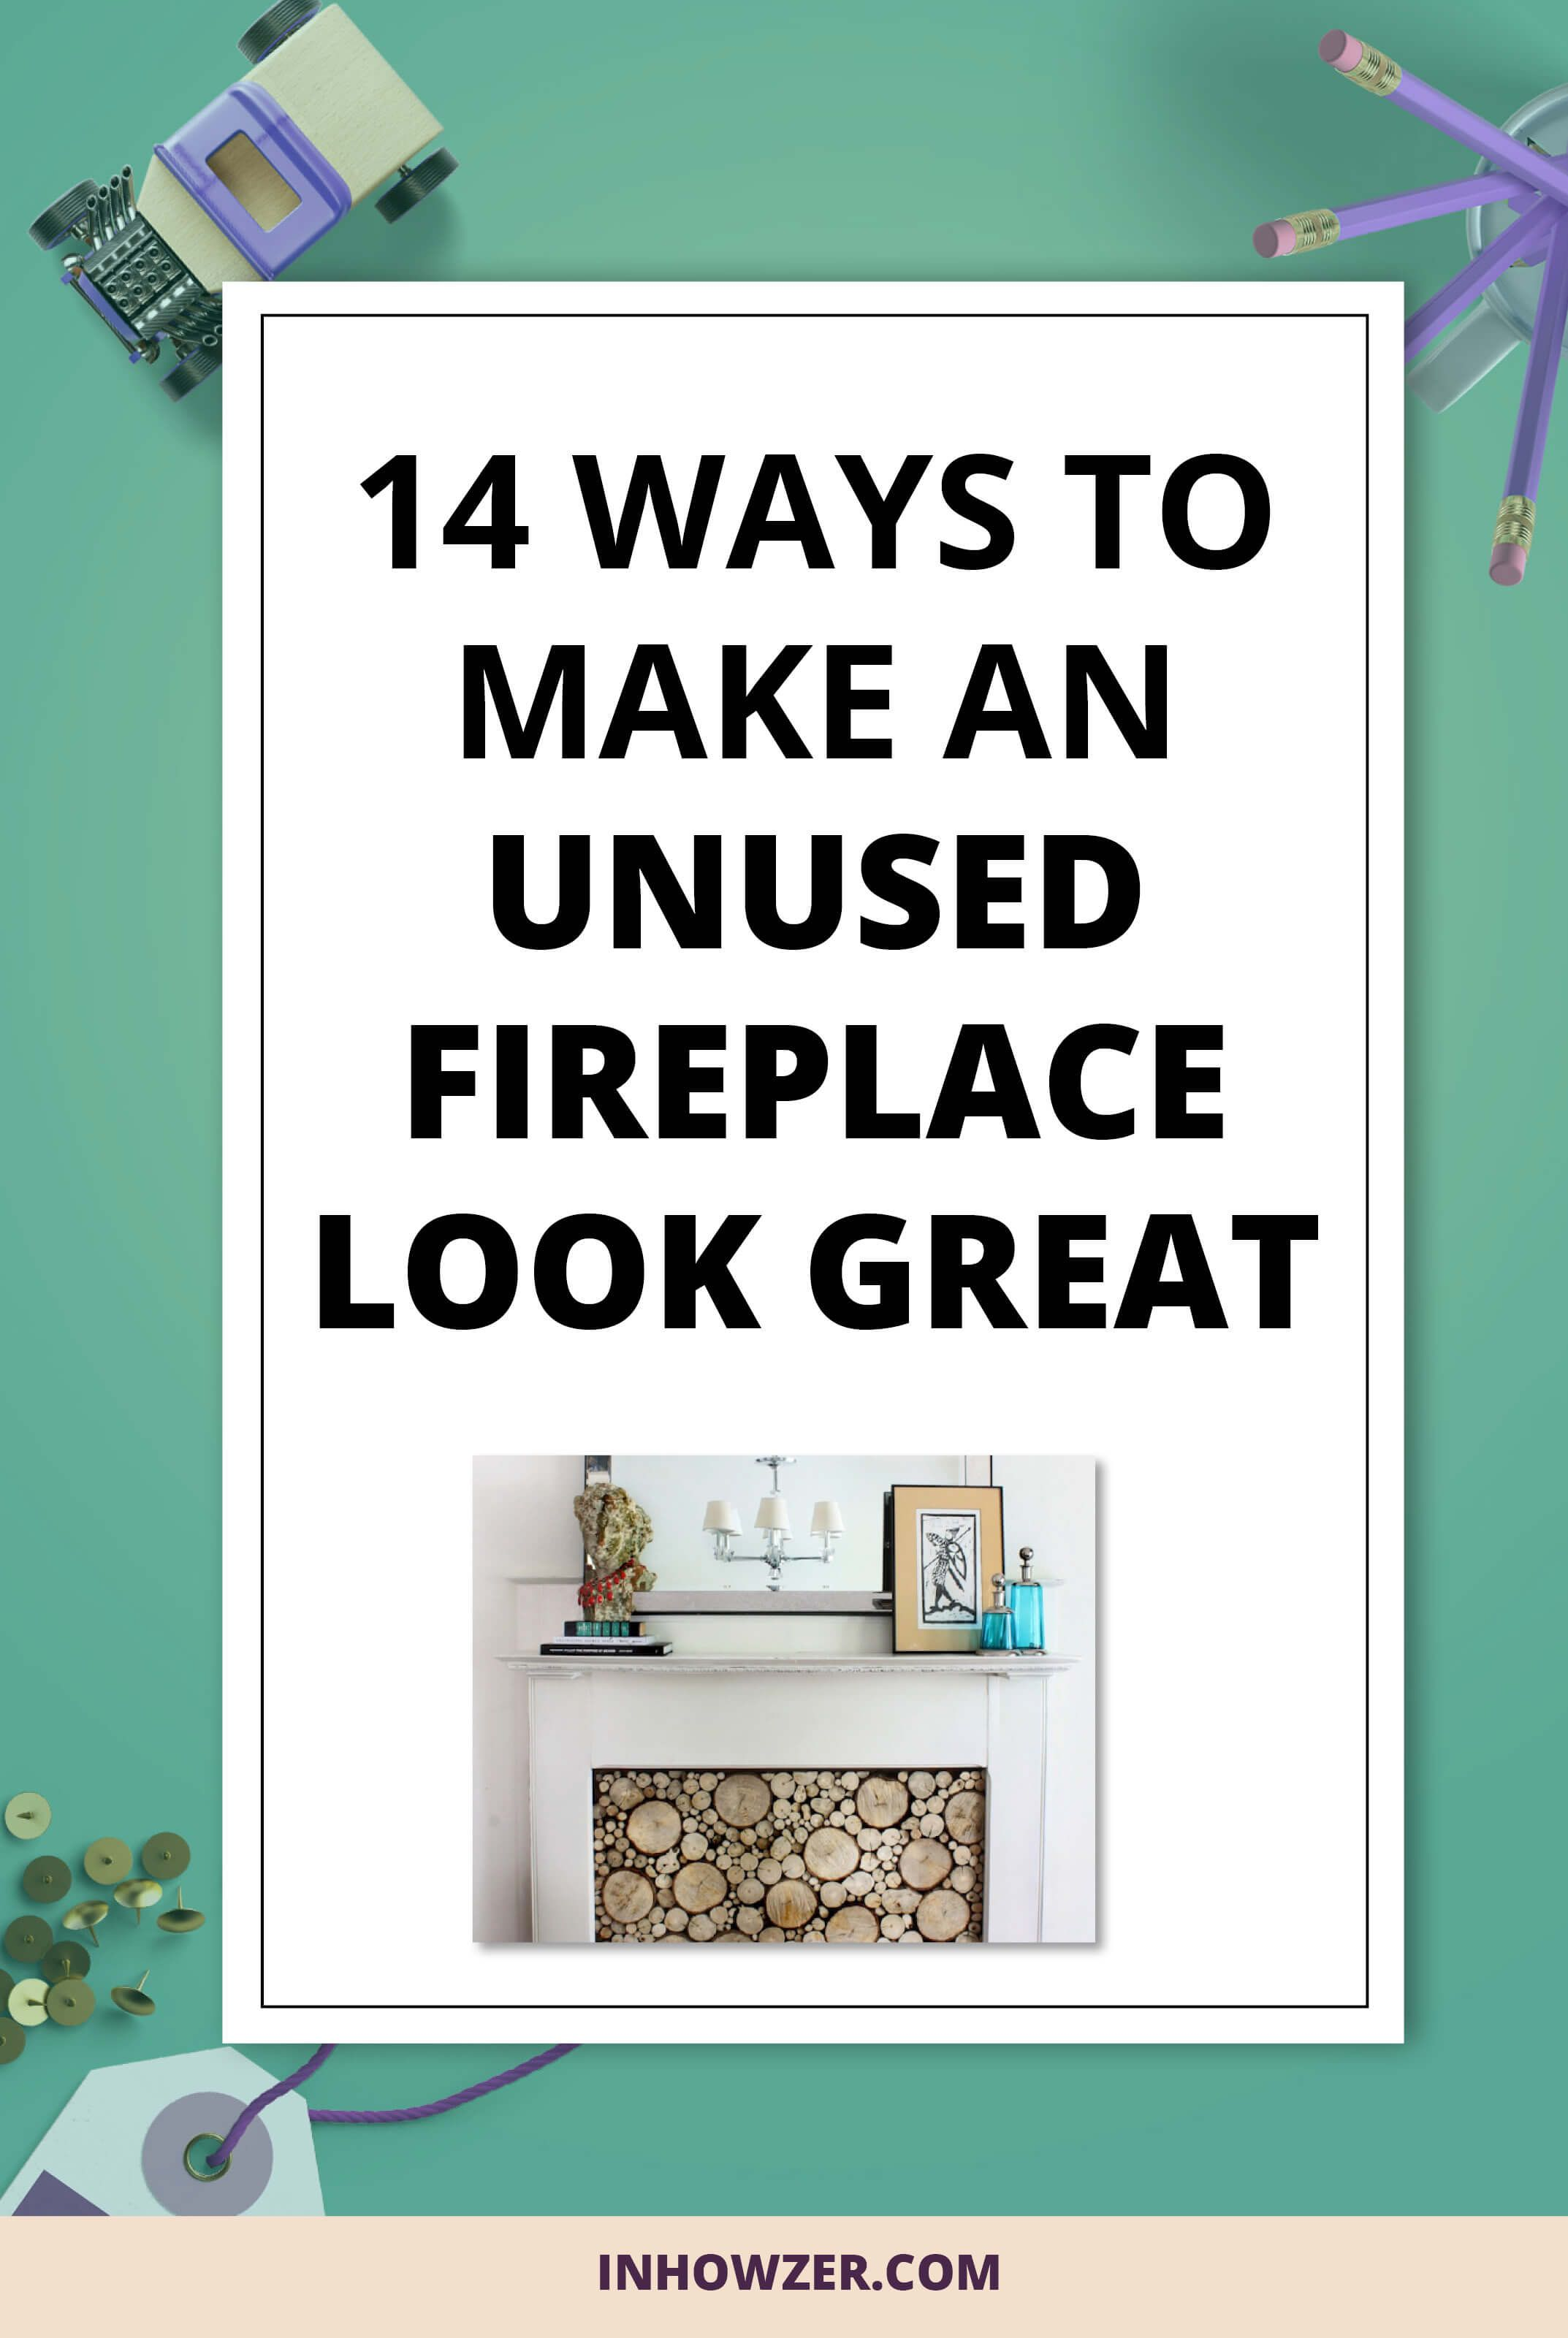 styling a non working fireplace is important as it is the focal